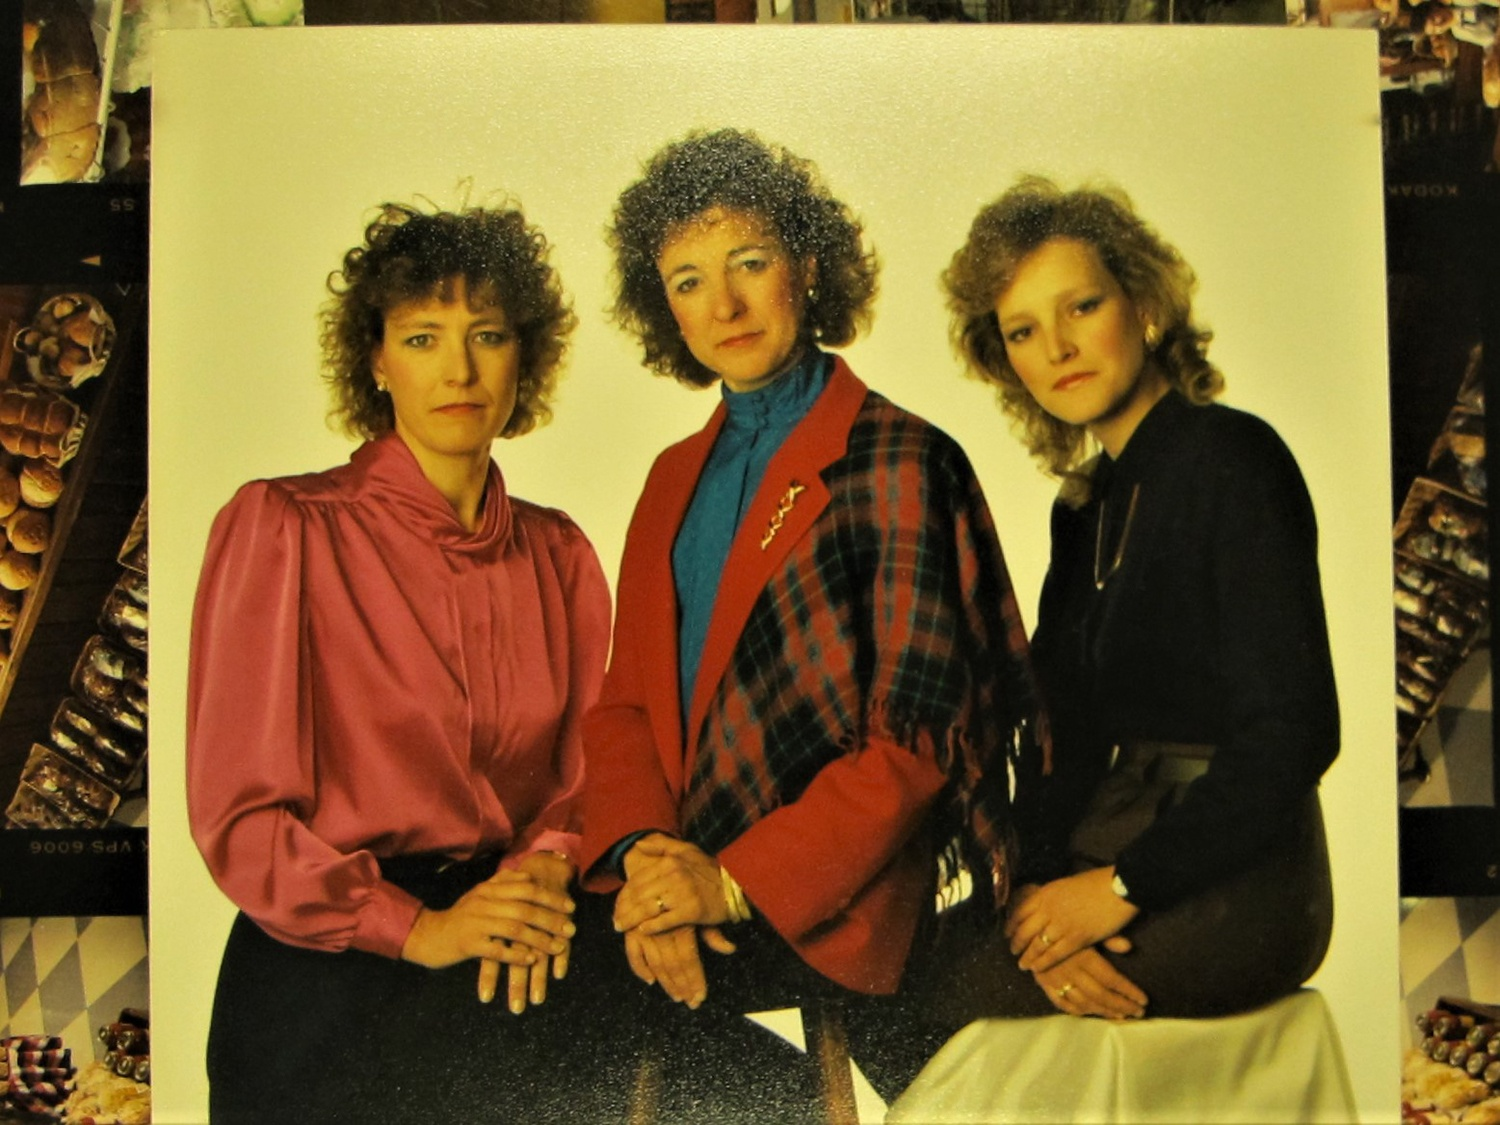 The McGinnis Sisters, Sharon Young, Bonnie Vello, and Noreen Campbell, after taking over the family's line of food stores in the 1980s.